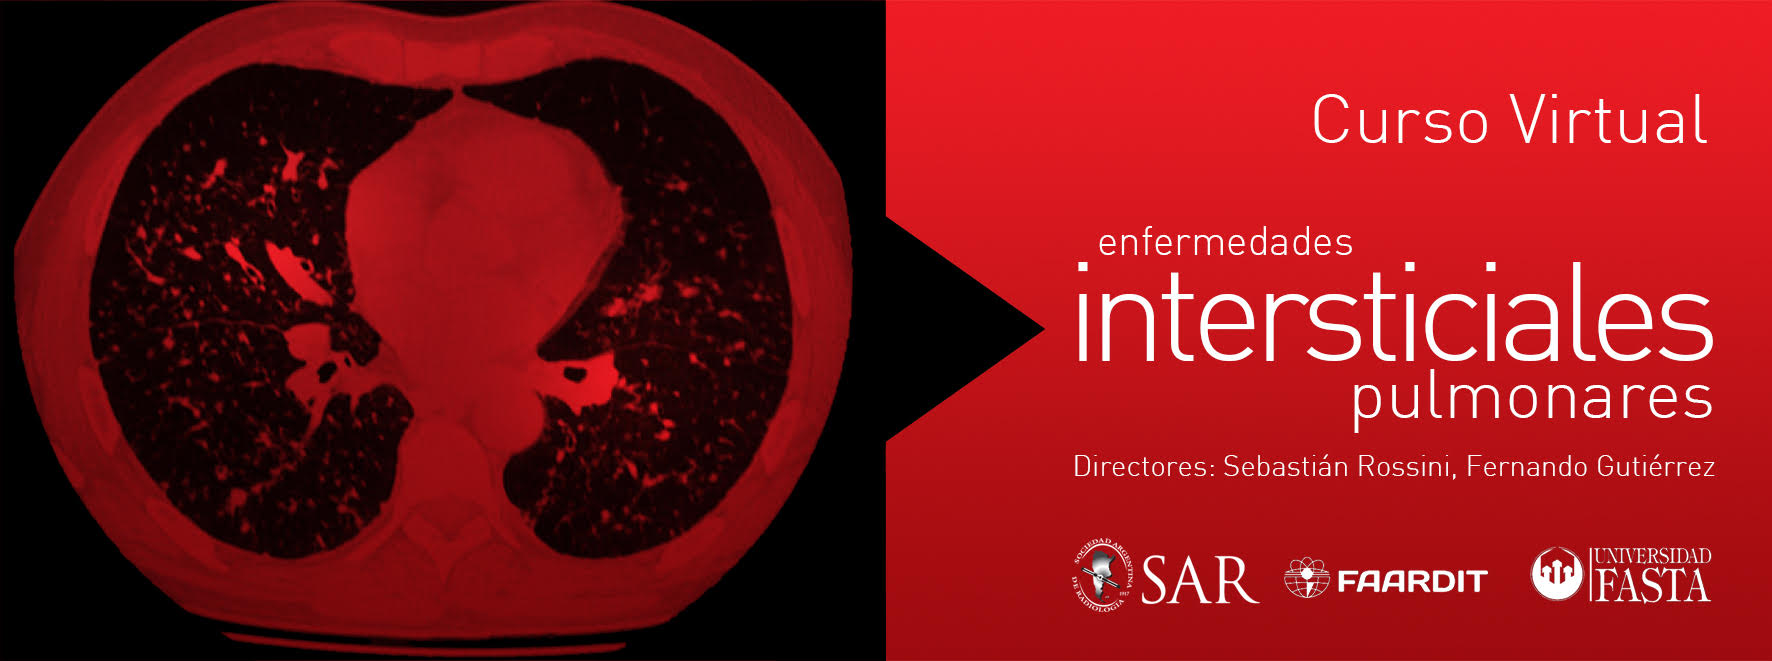 Curso Virtual de Enfermedades Intersticiales Pulmonares